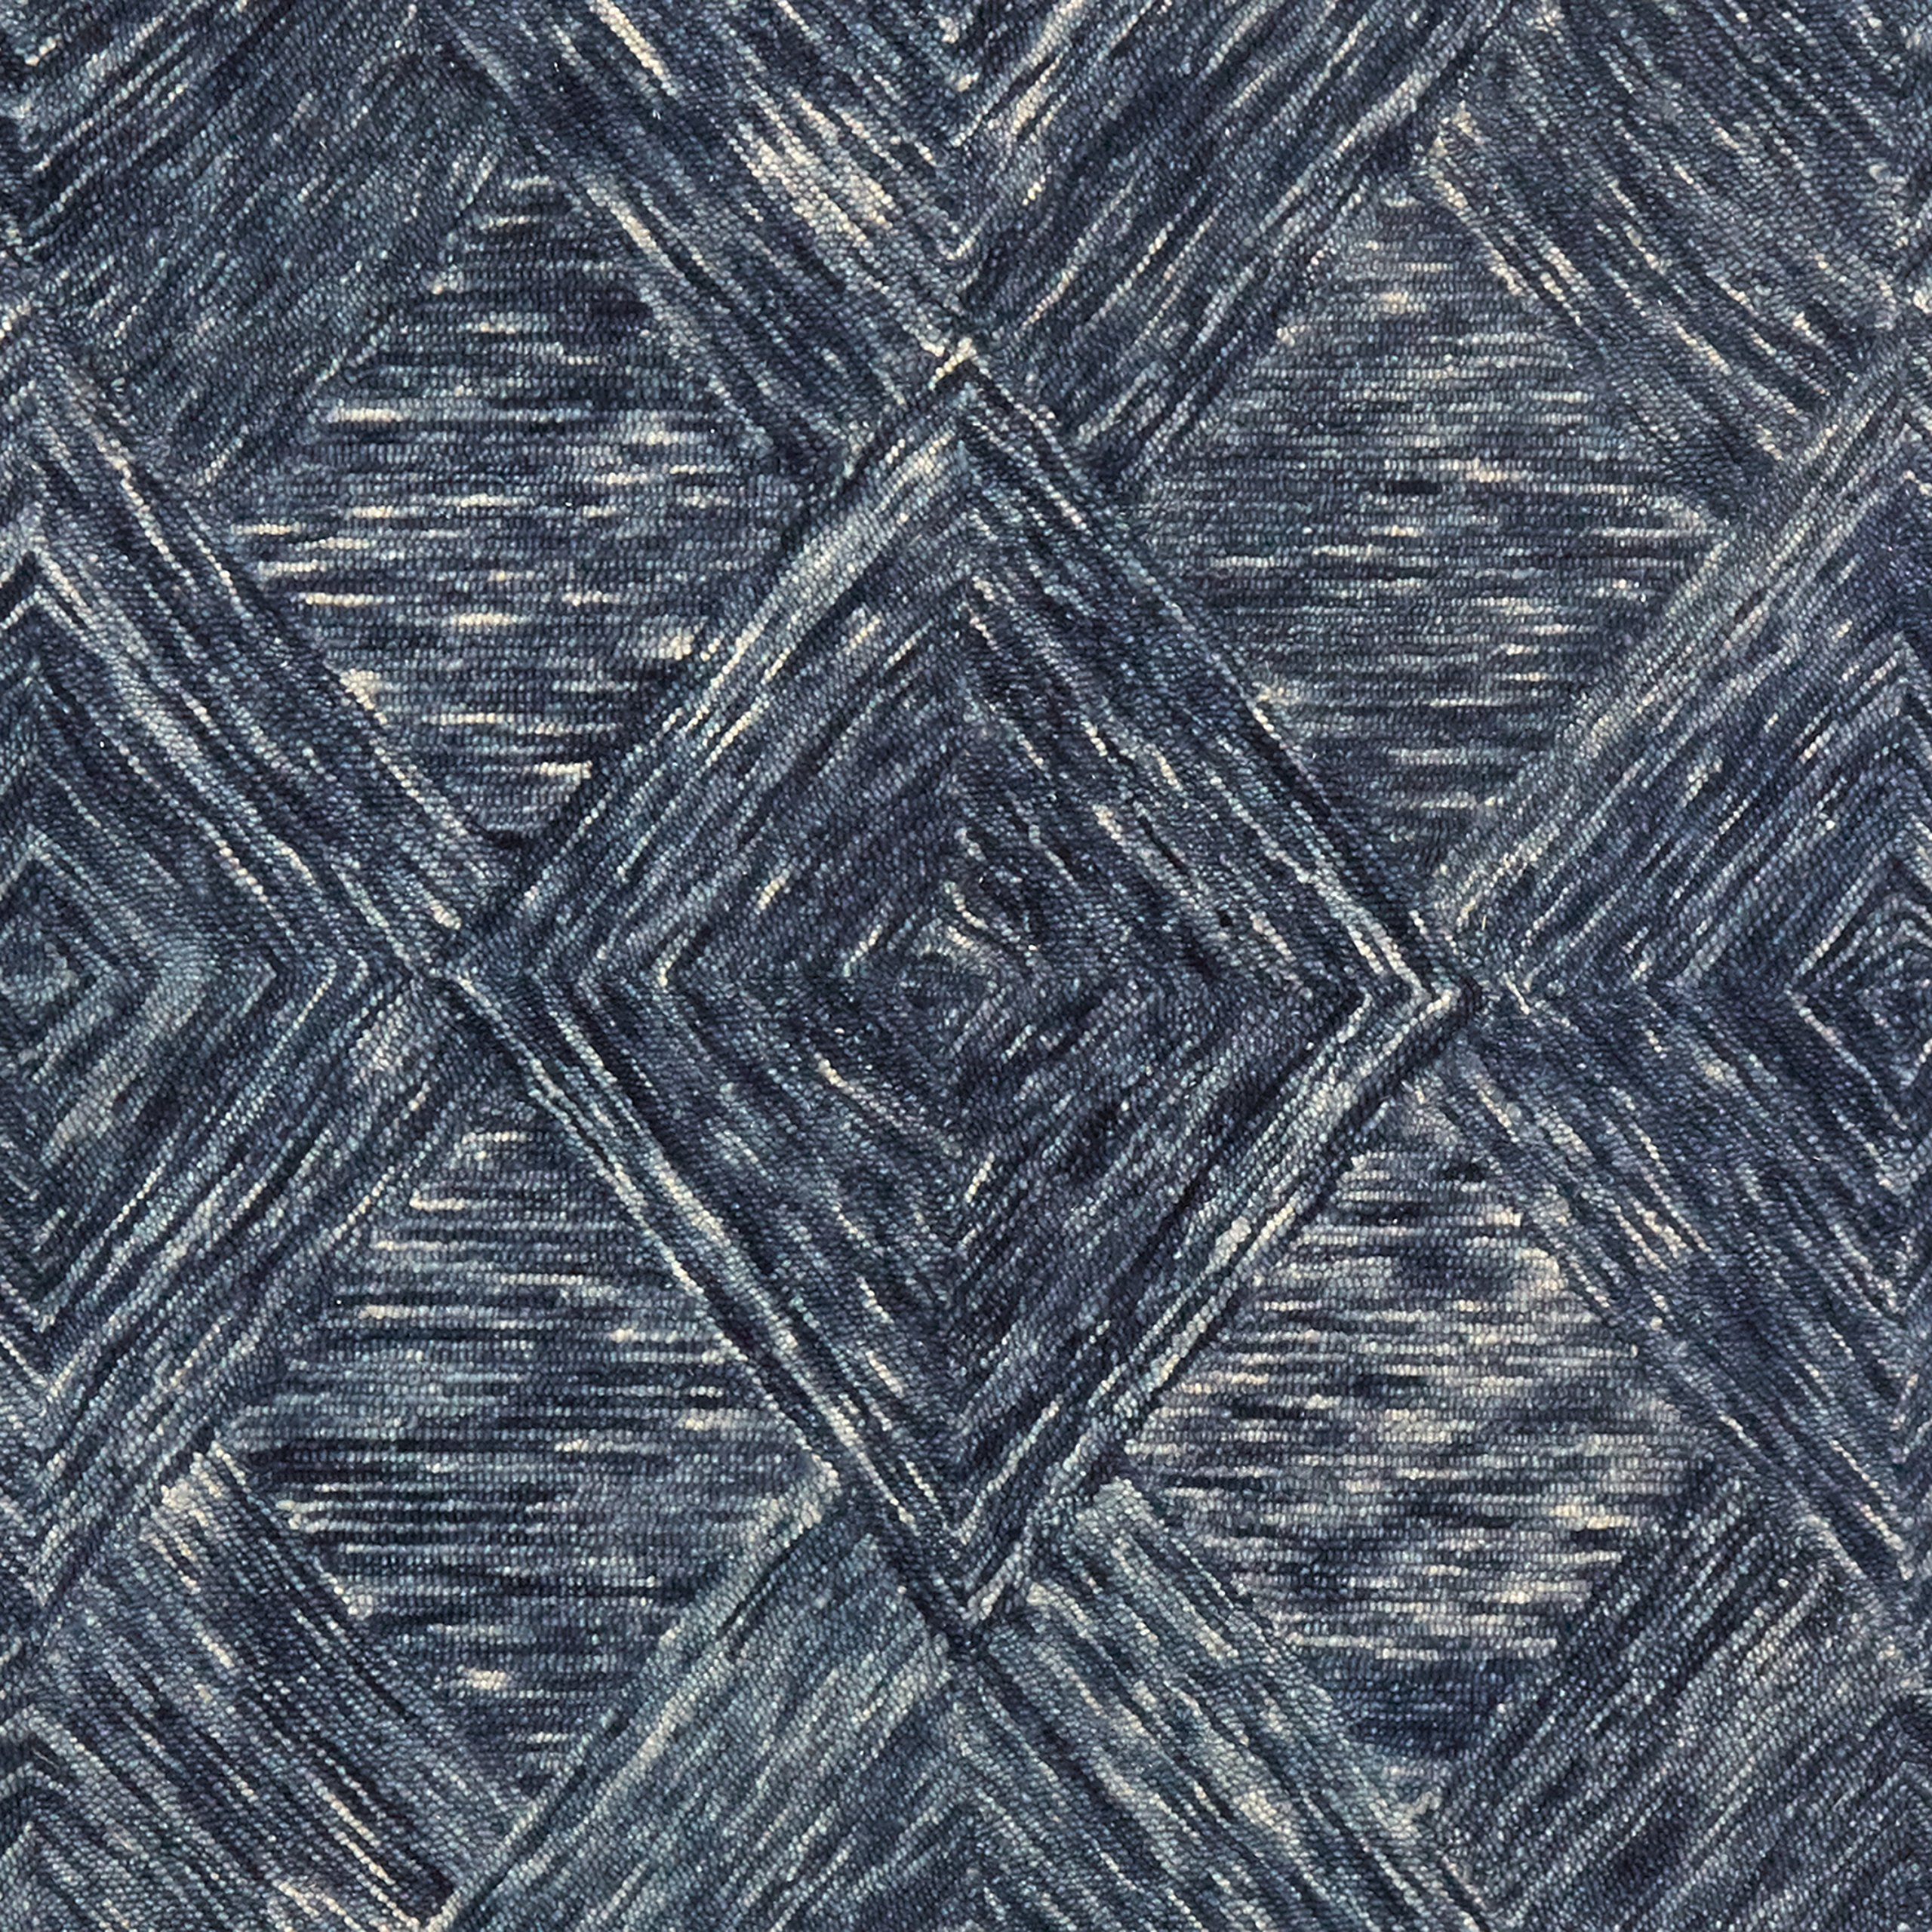 Rivet Motion Patterned Wool Area Rug, 8' x 10'6, Denim Blue by Rivet (Image #2)